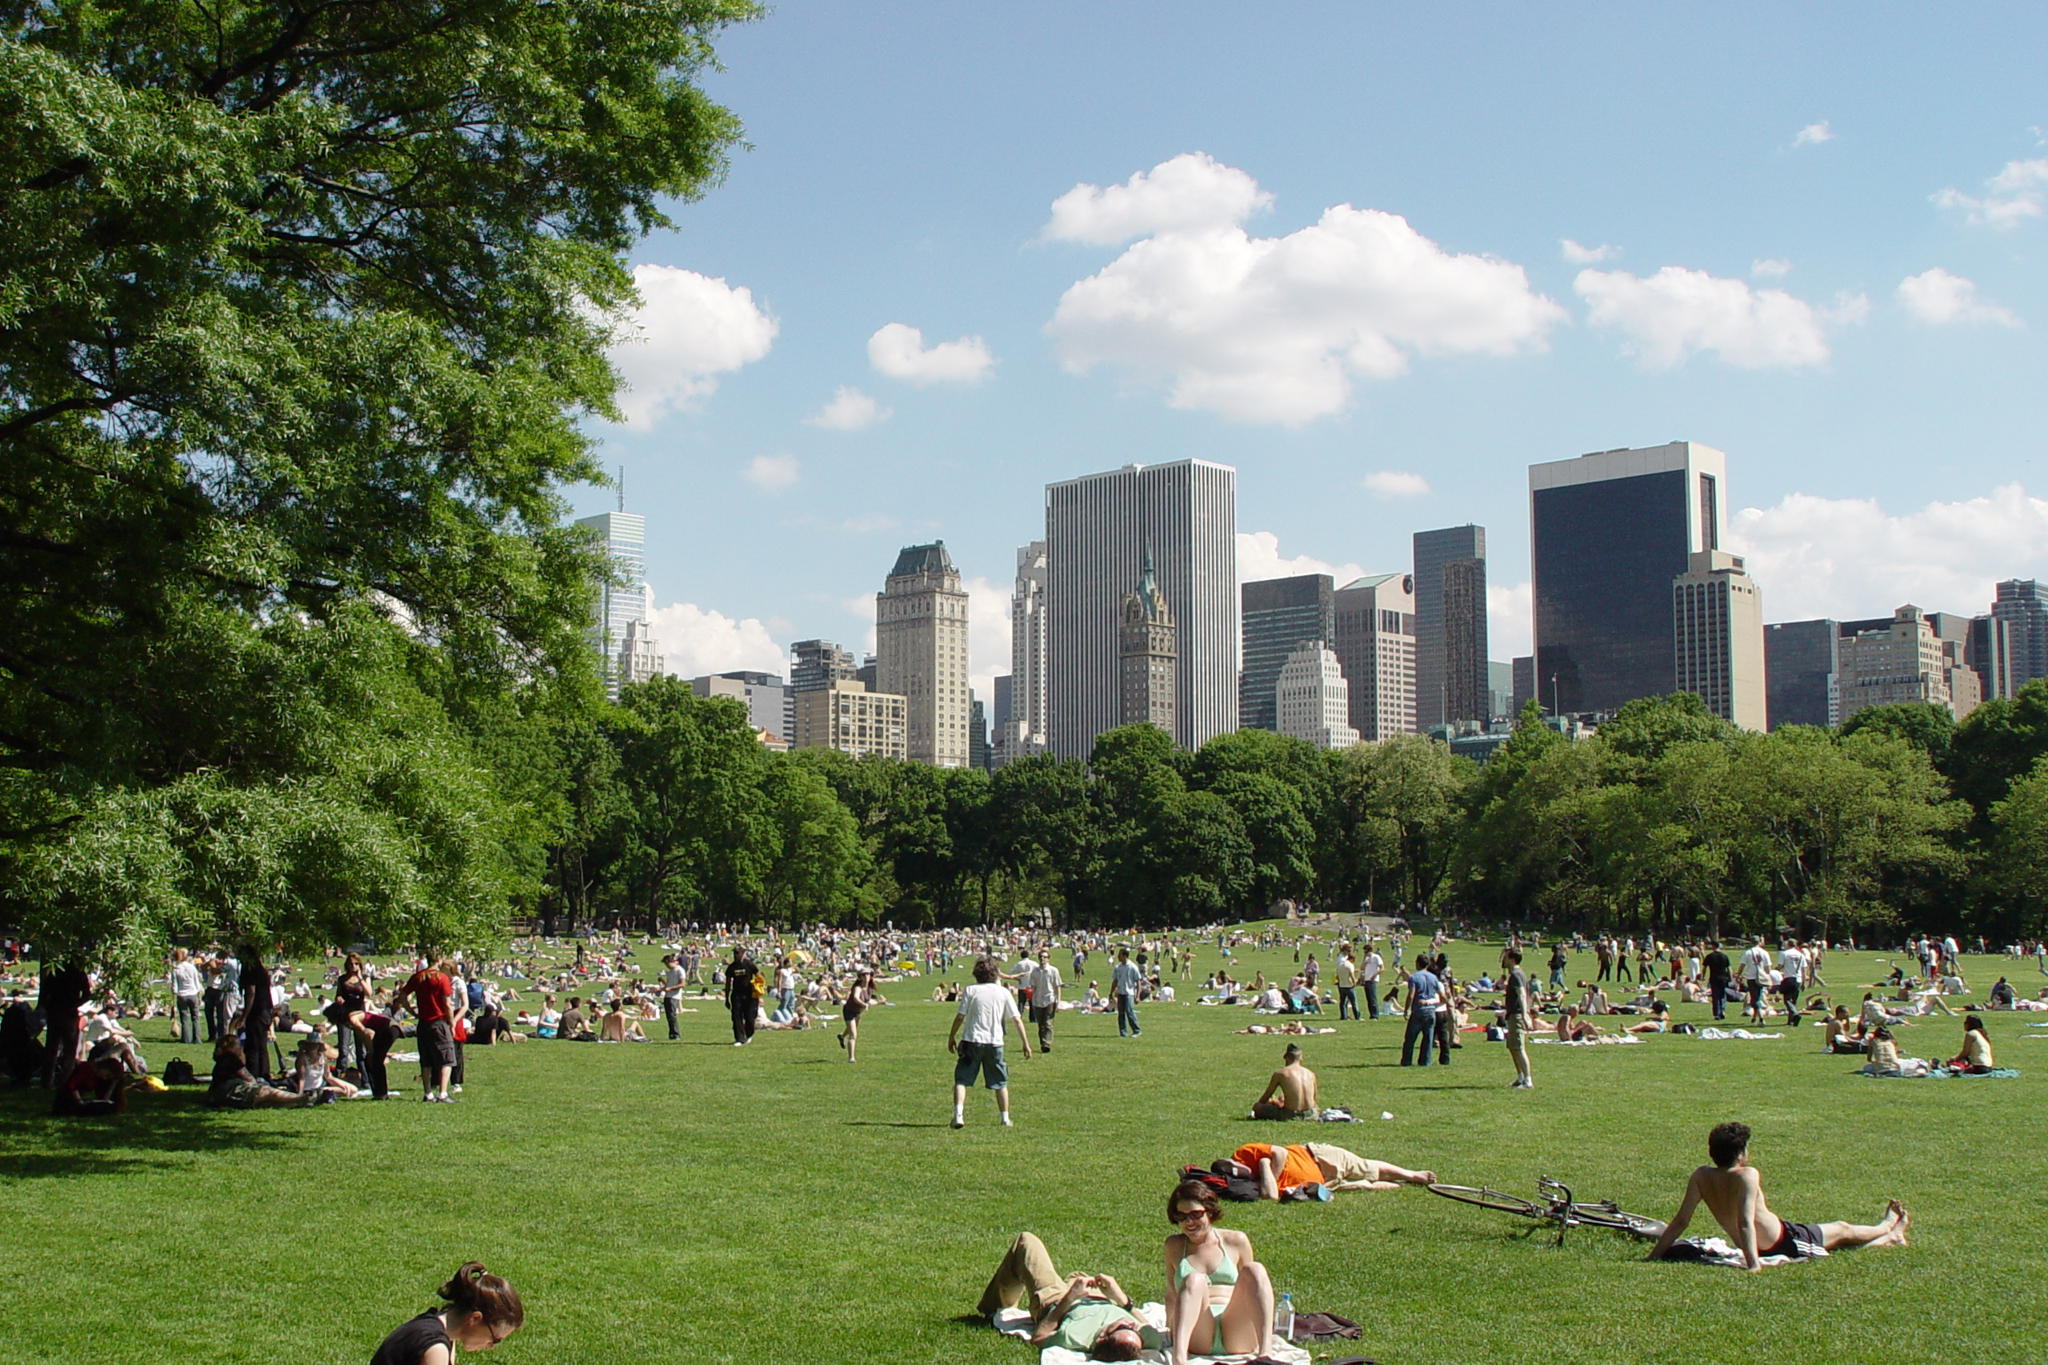 Things to do in NYC parks